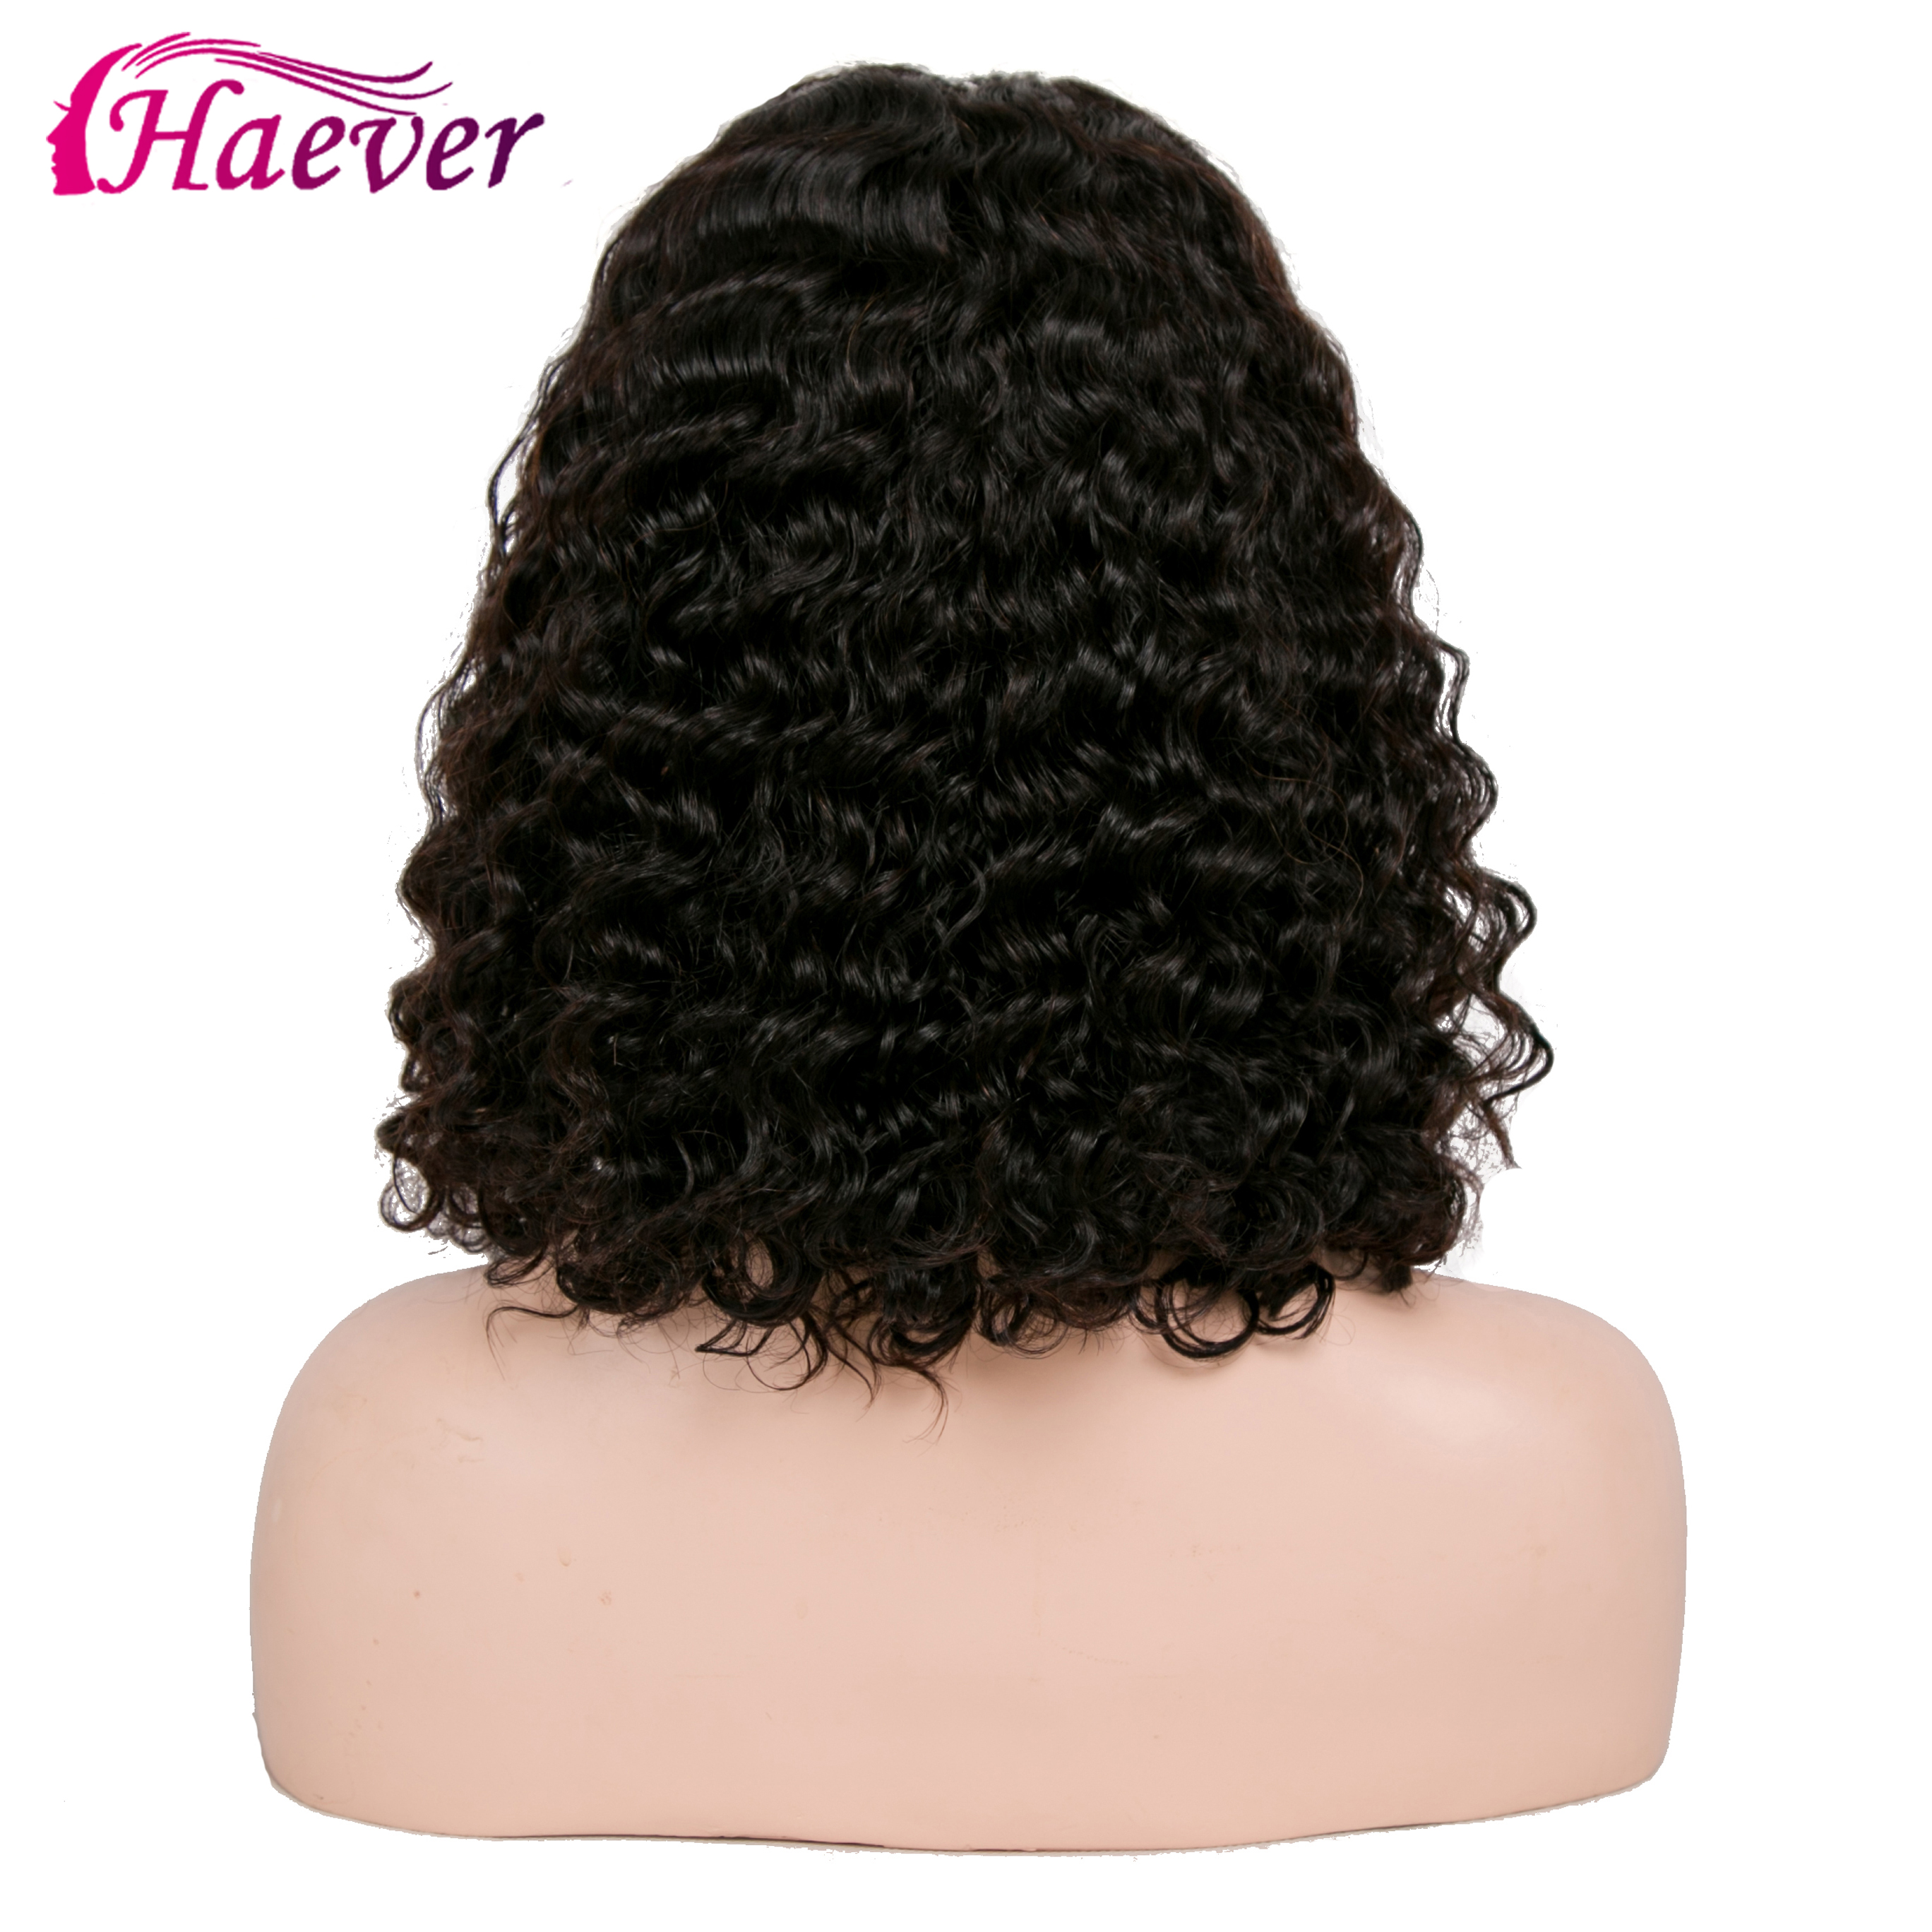 Haever Brazilian Kinky Curly Short Bob Wig 150% Lace Front Human New Hair Wigs For Woman 13x4 With Baby HairPre Plucked Remy